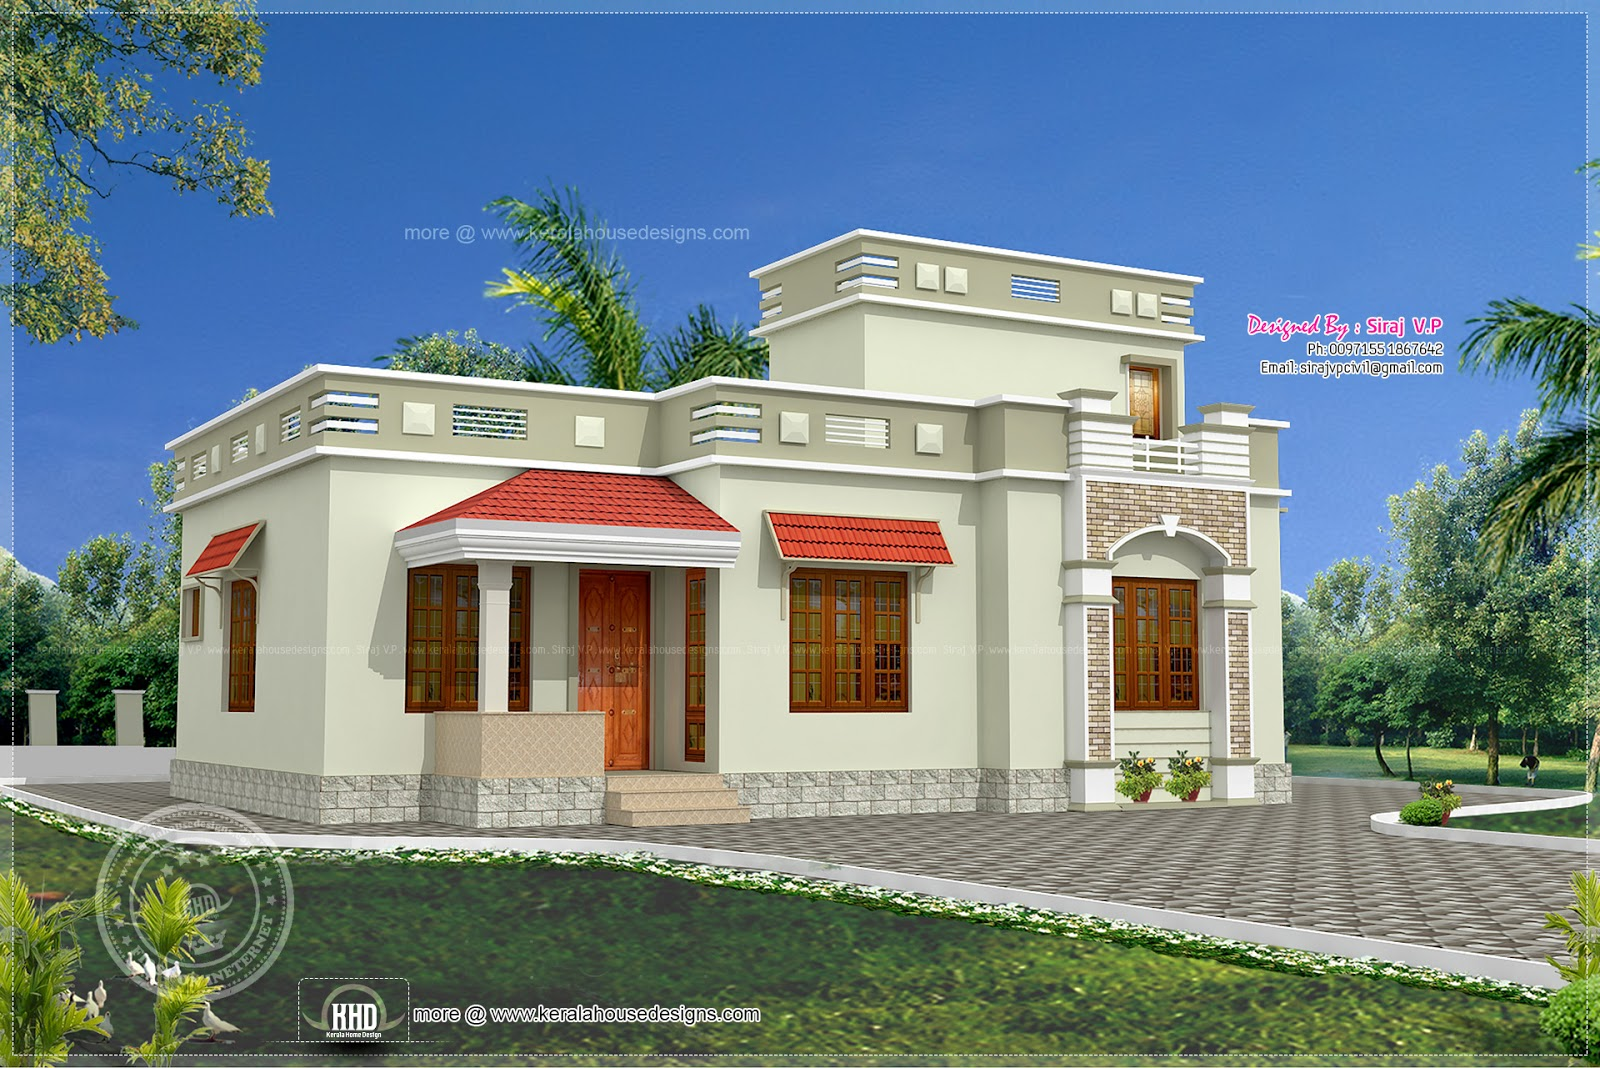 Low budget kerala style home in 1075 kerala home design and floor plans Home design and cost